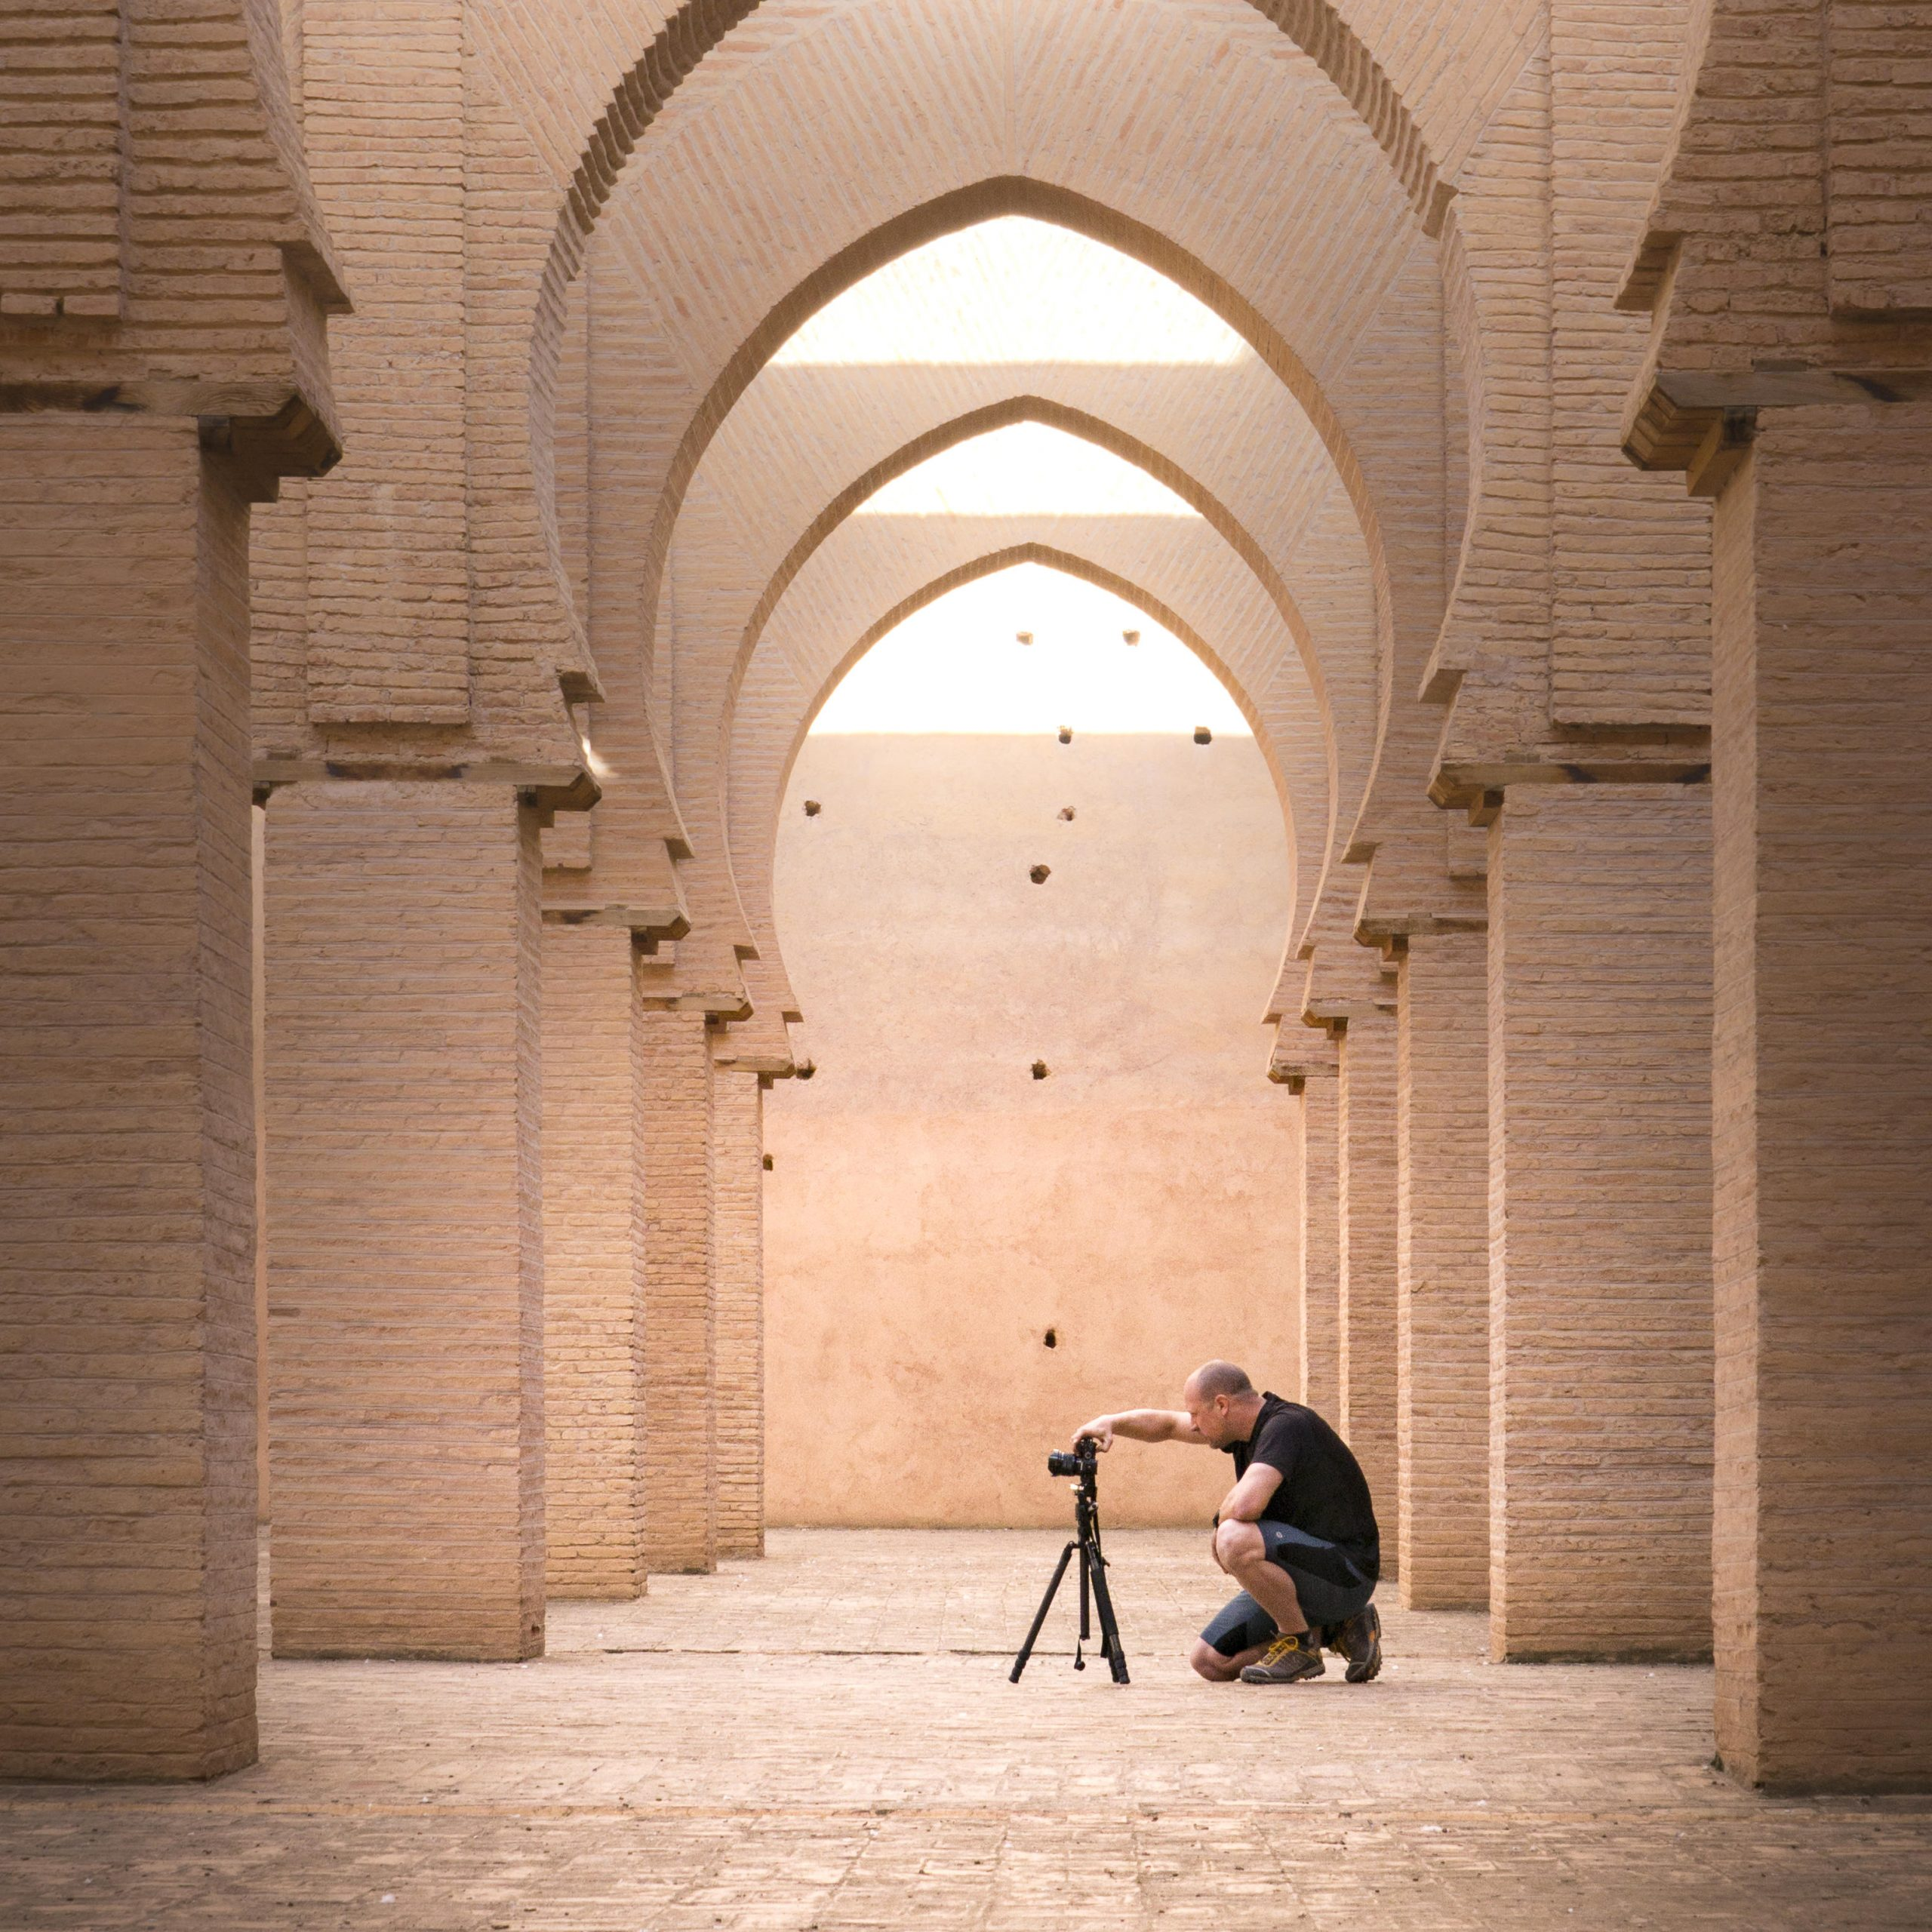 Composing a photograph at Tinmel Mosque in Morocco, Intentionally Lost, Kevin Wenning #intentionallylost